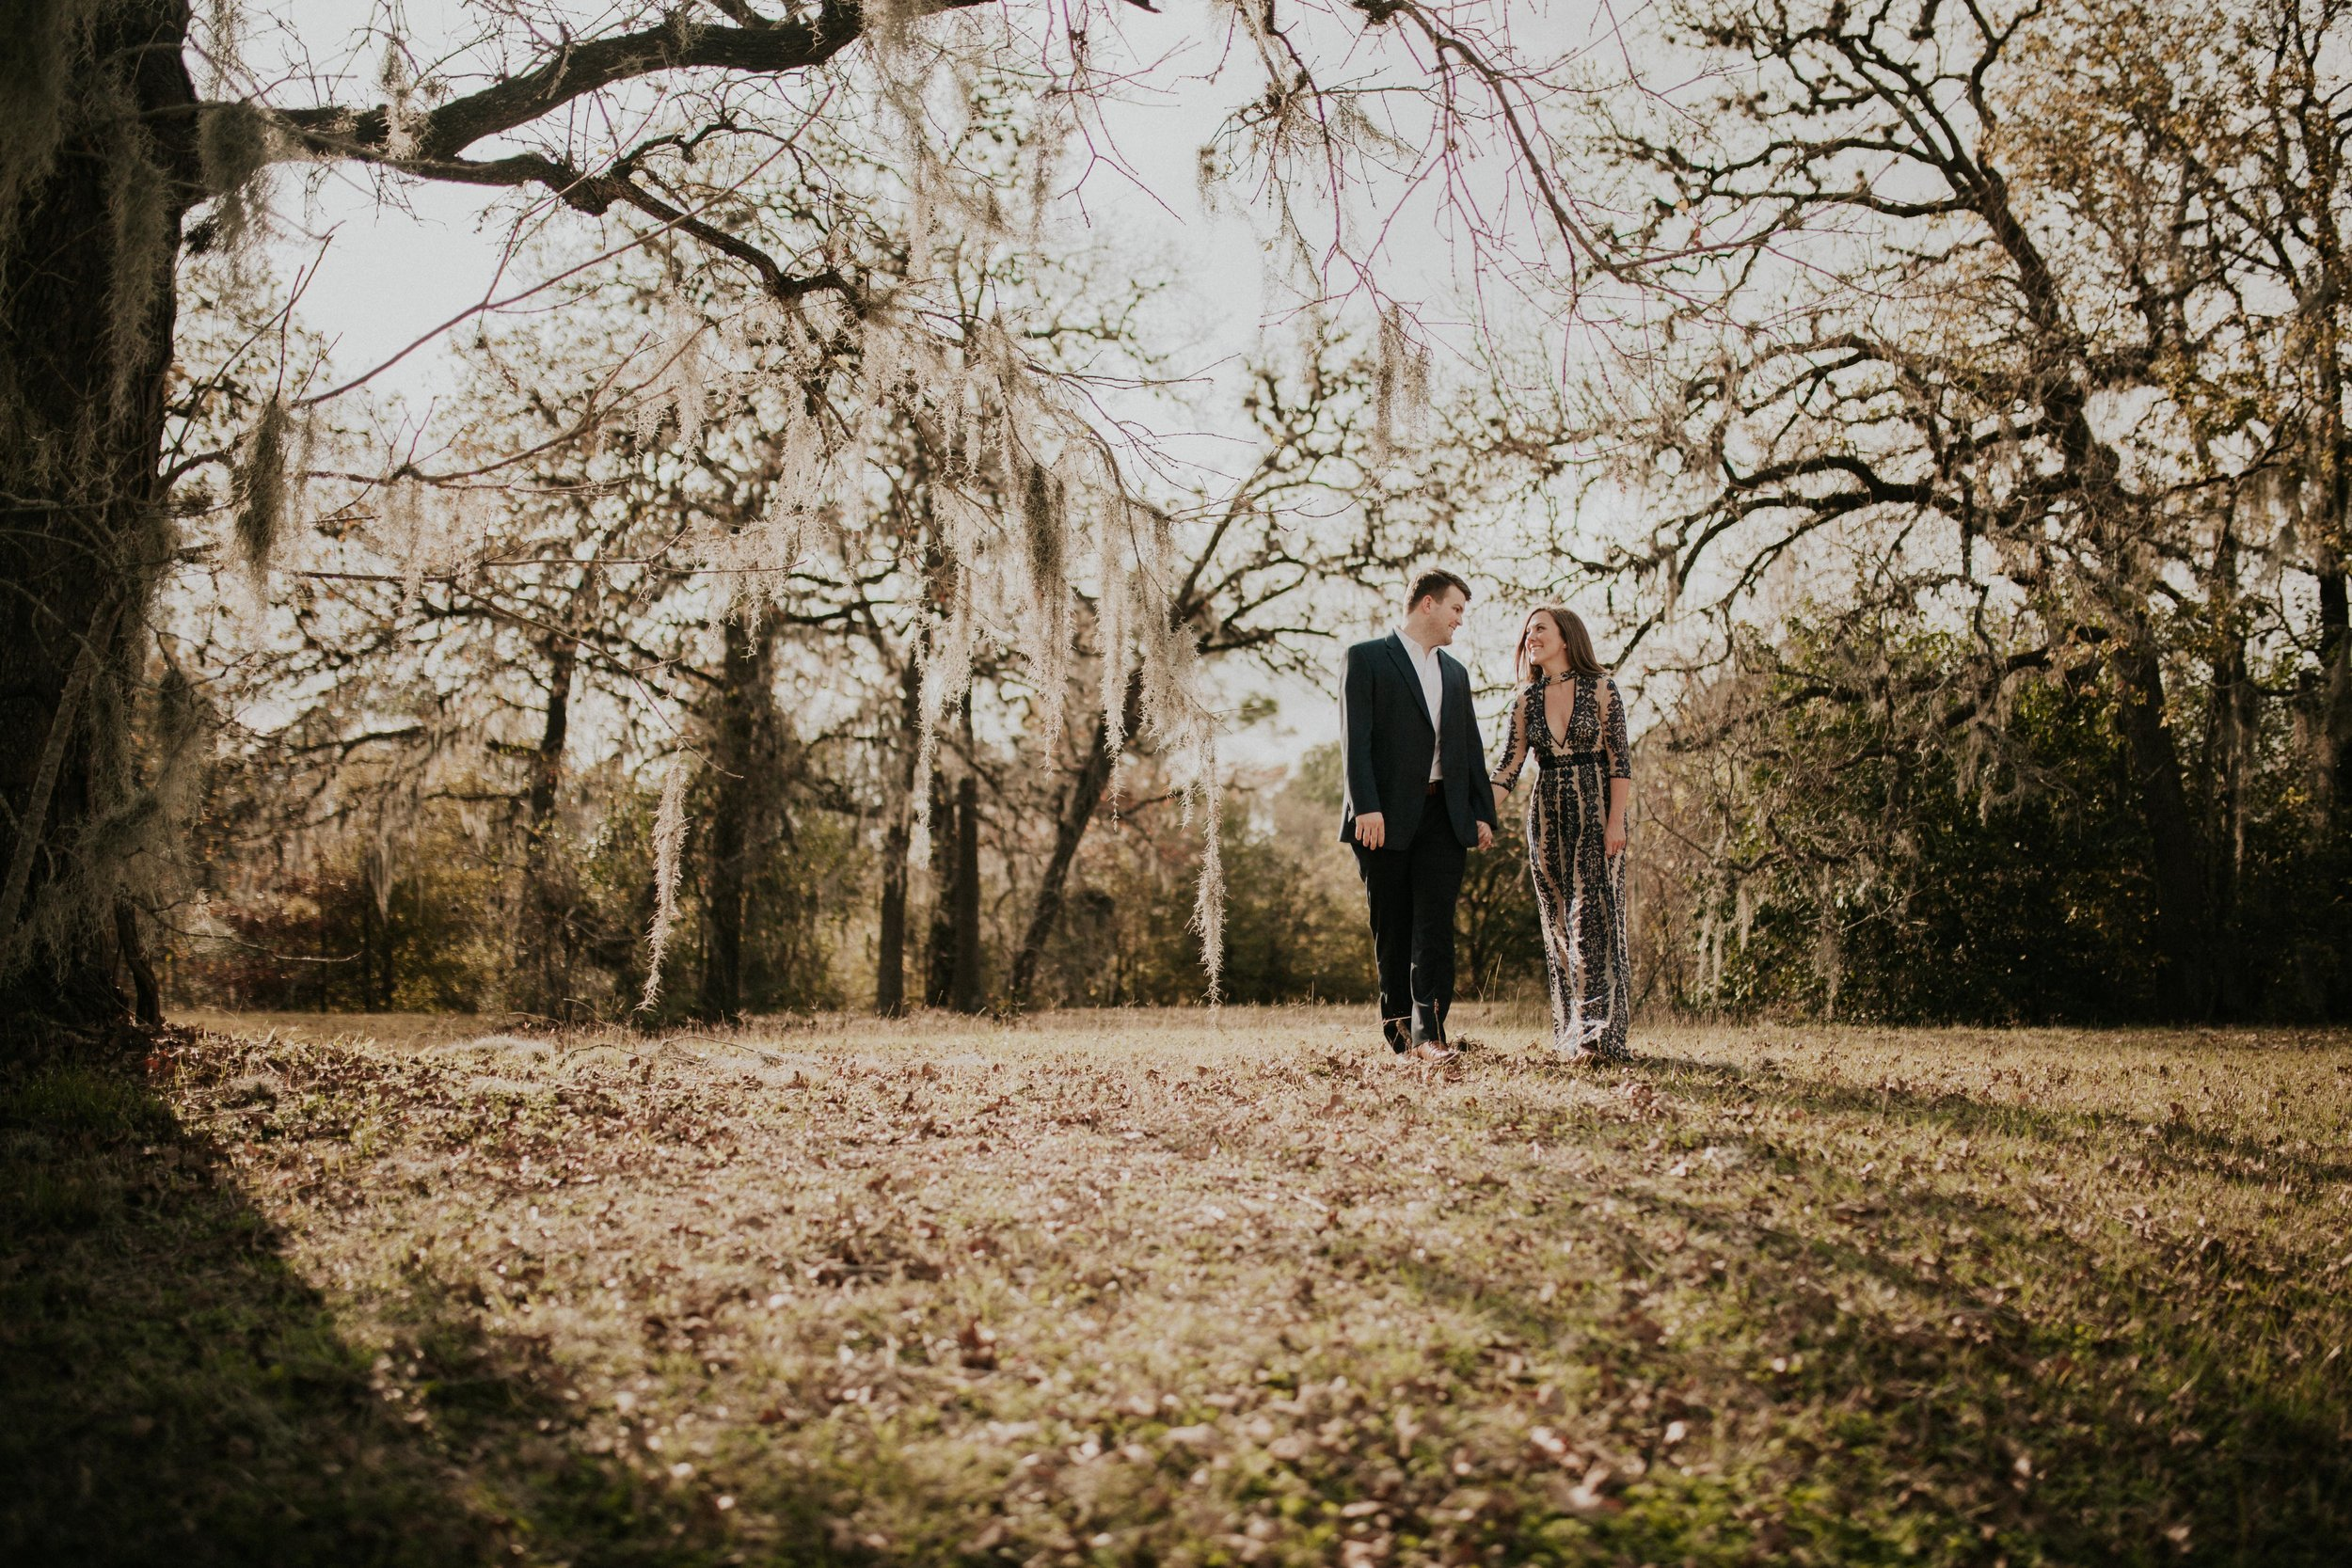 Memorial Park Engagement Session Houston Texas - Madeleine Frost-1171.jpg